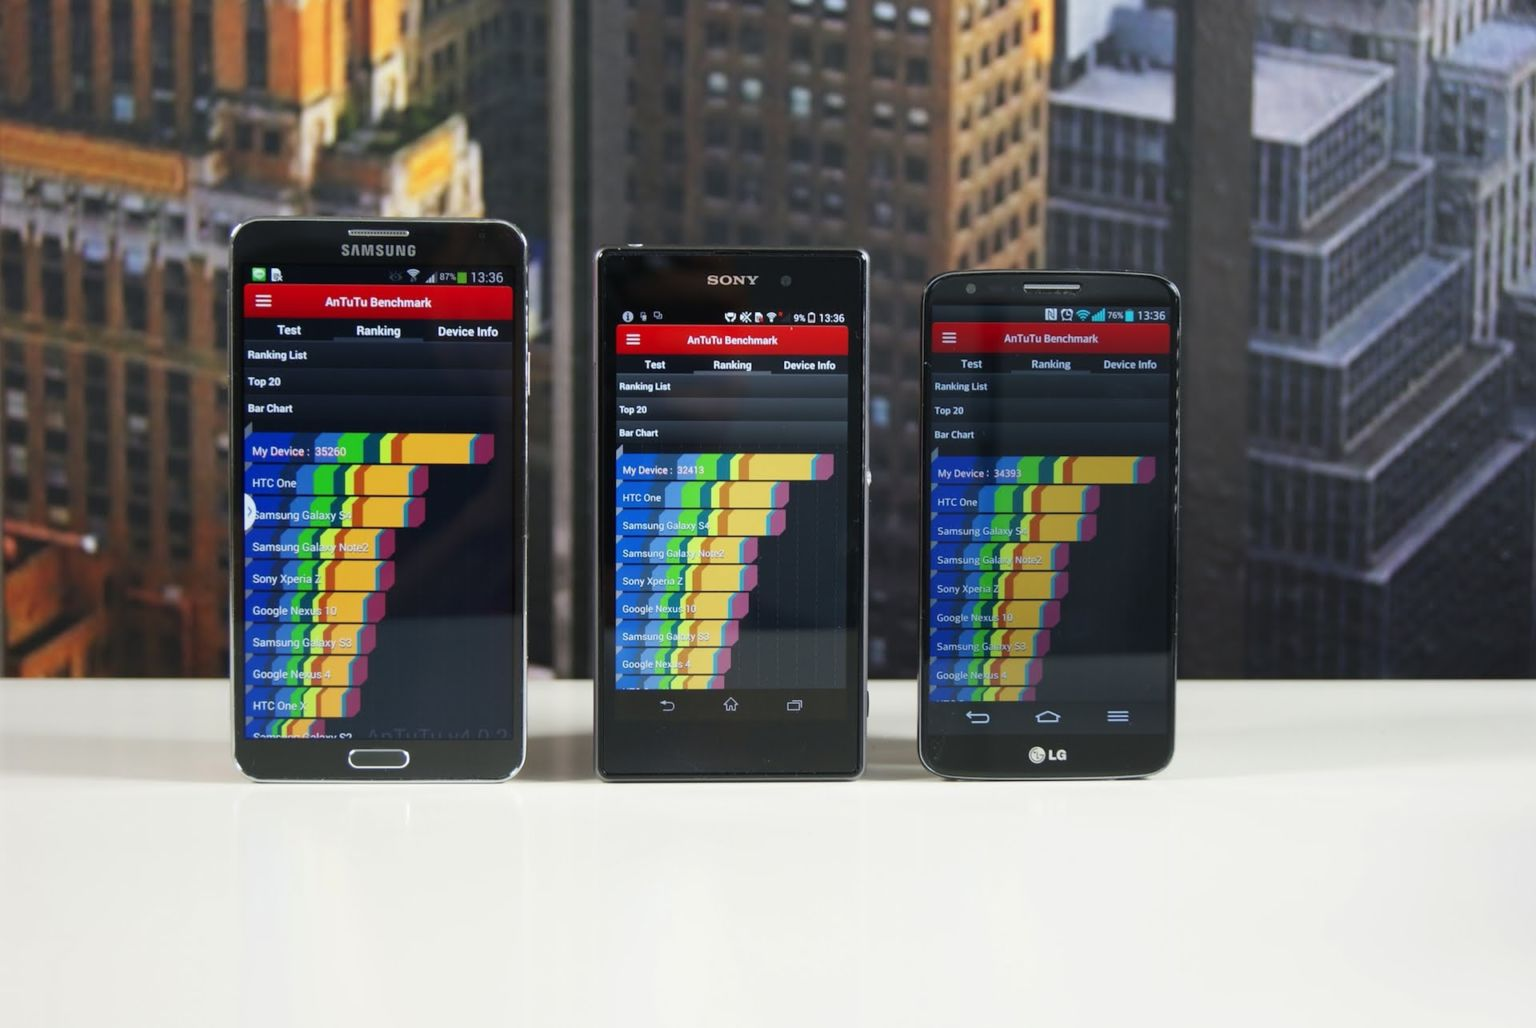 Samsung Galaxy Note 3 LG G2 Xperia Z1 android Marshmallow